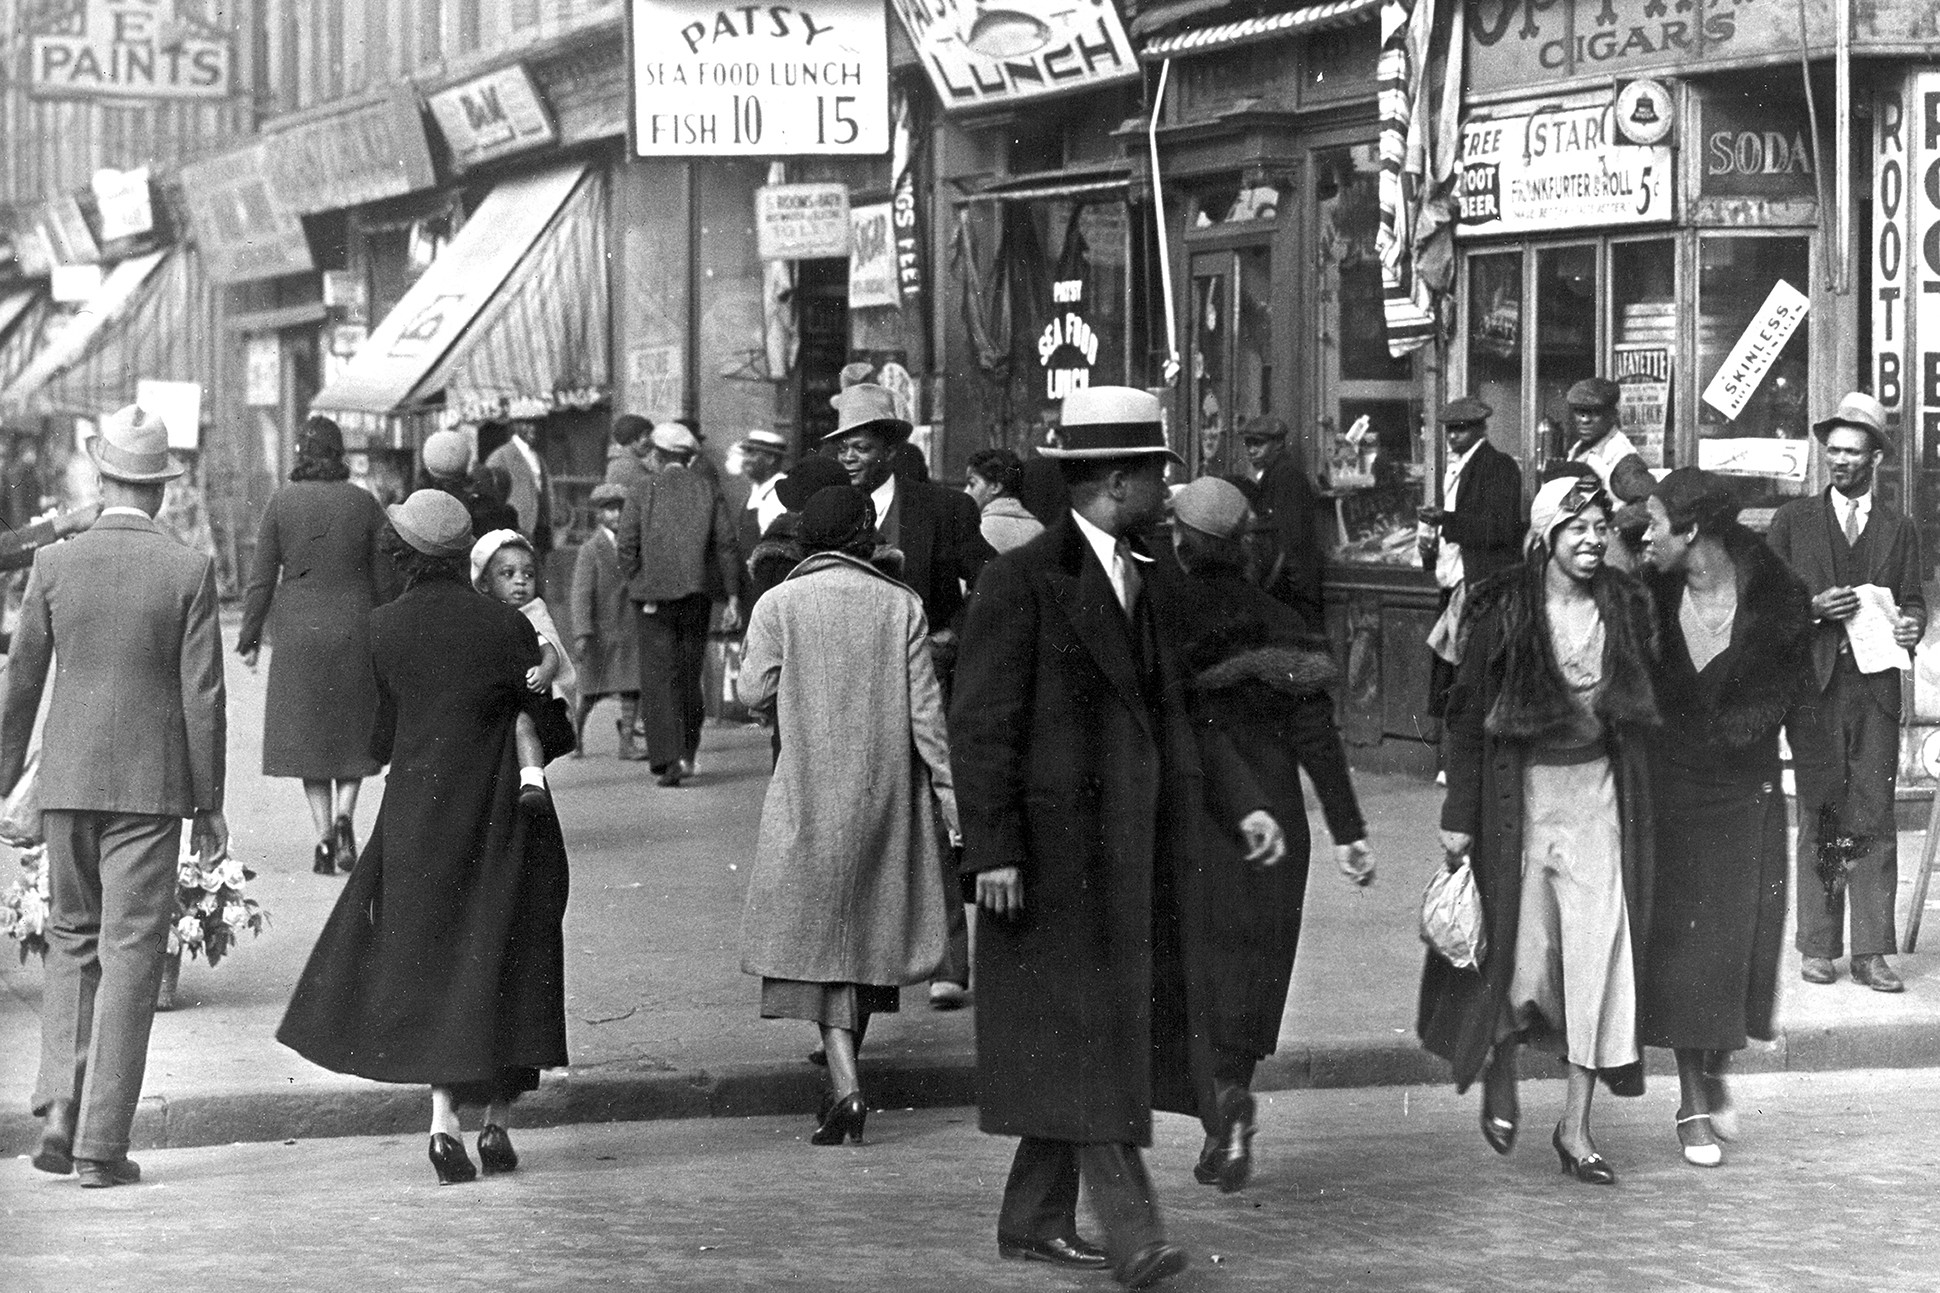 Black and white image of a street scene in Harlem in the 1930s.